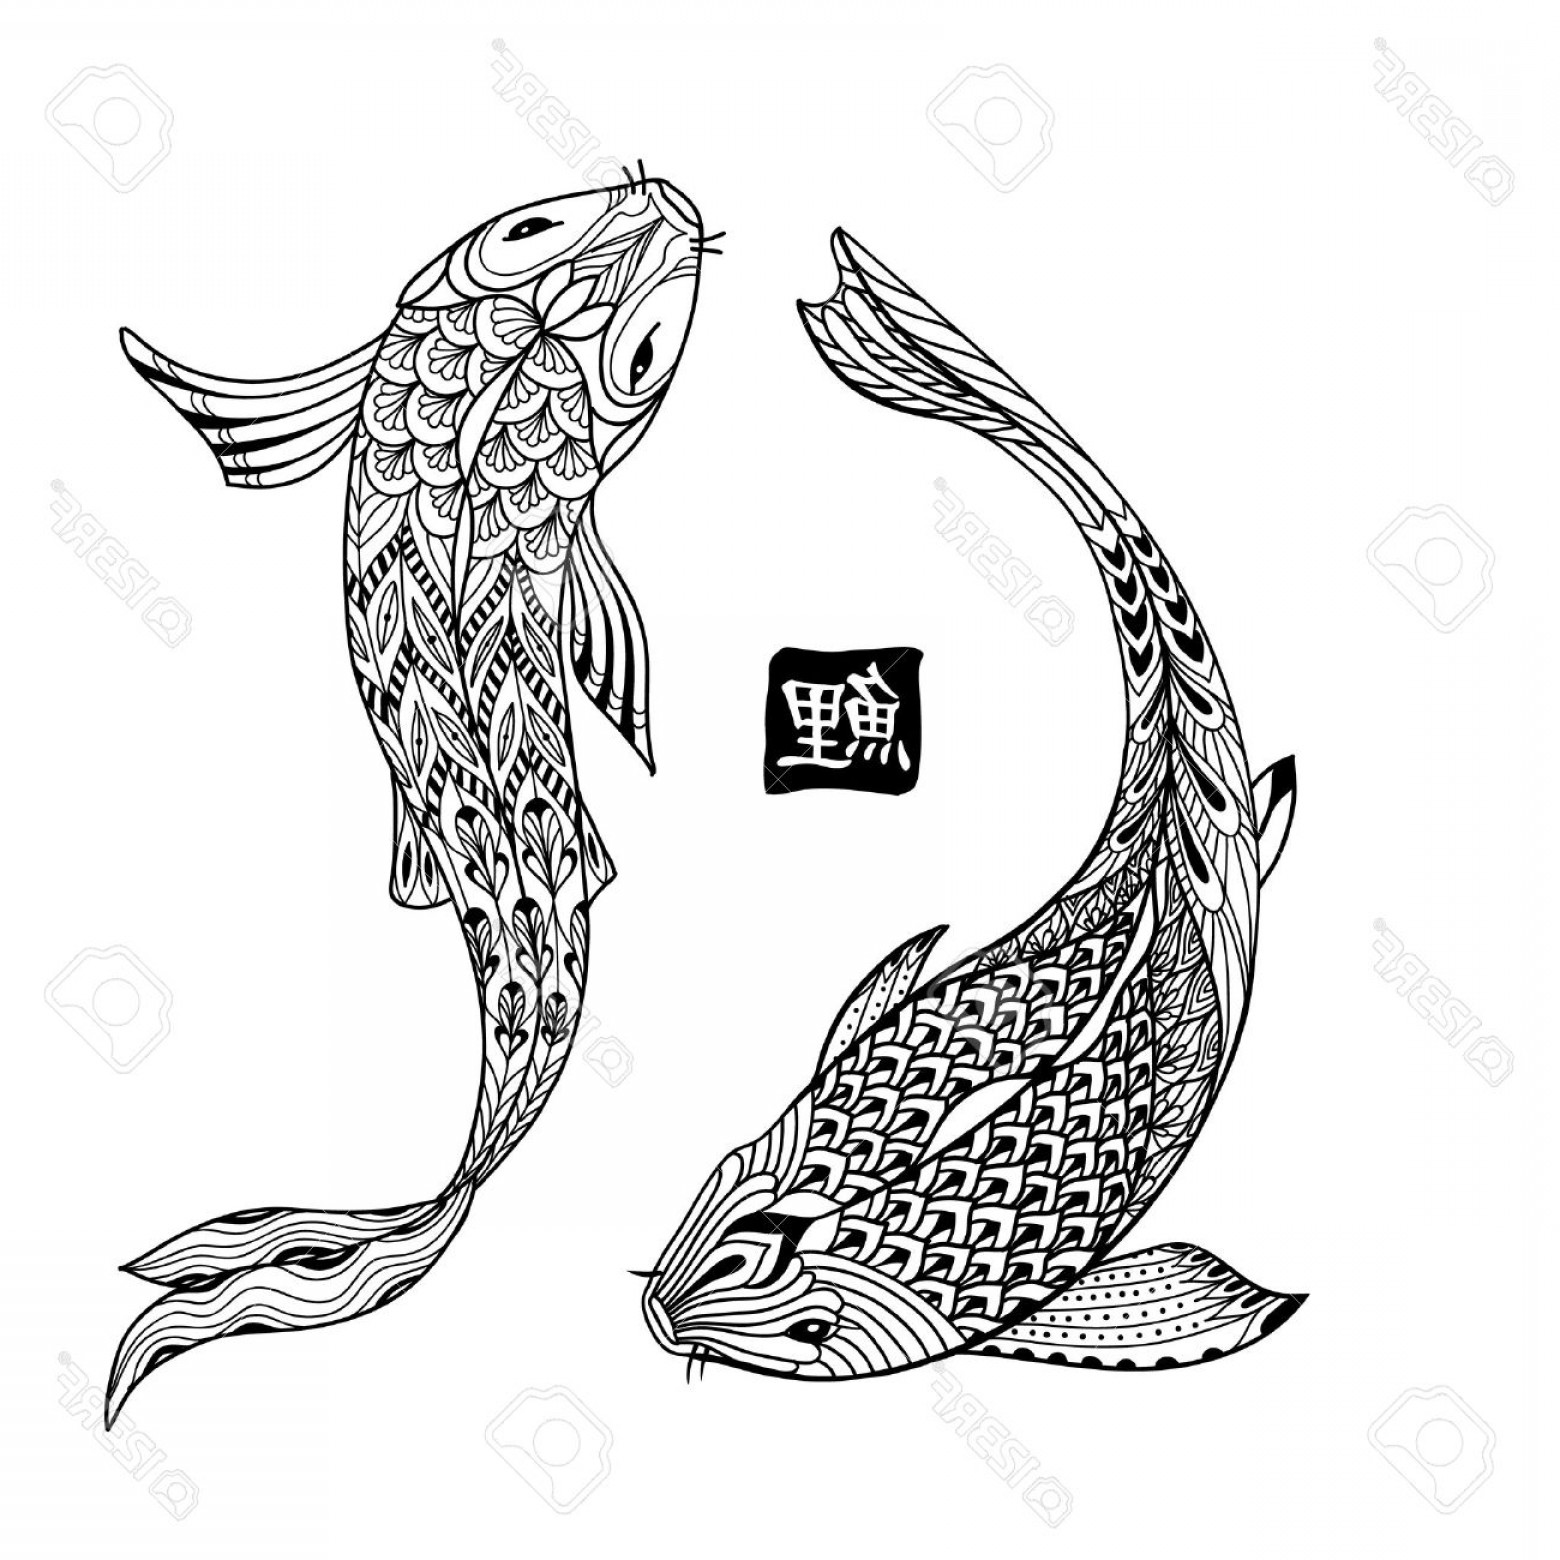 Koi Vector: Photostock Vector Hand Drawn Koi Fish Japanese Carp Line Drawing For Coloring Book Doodle Characters Meaning Carp